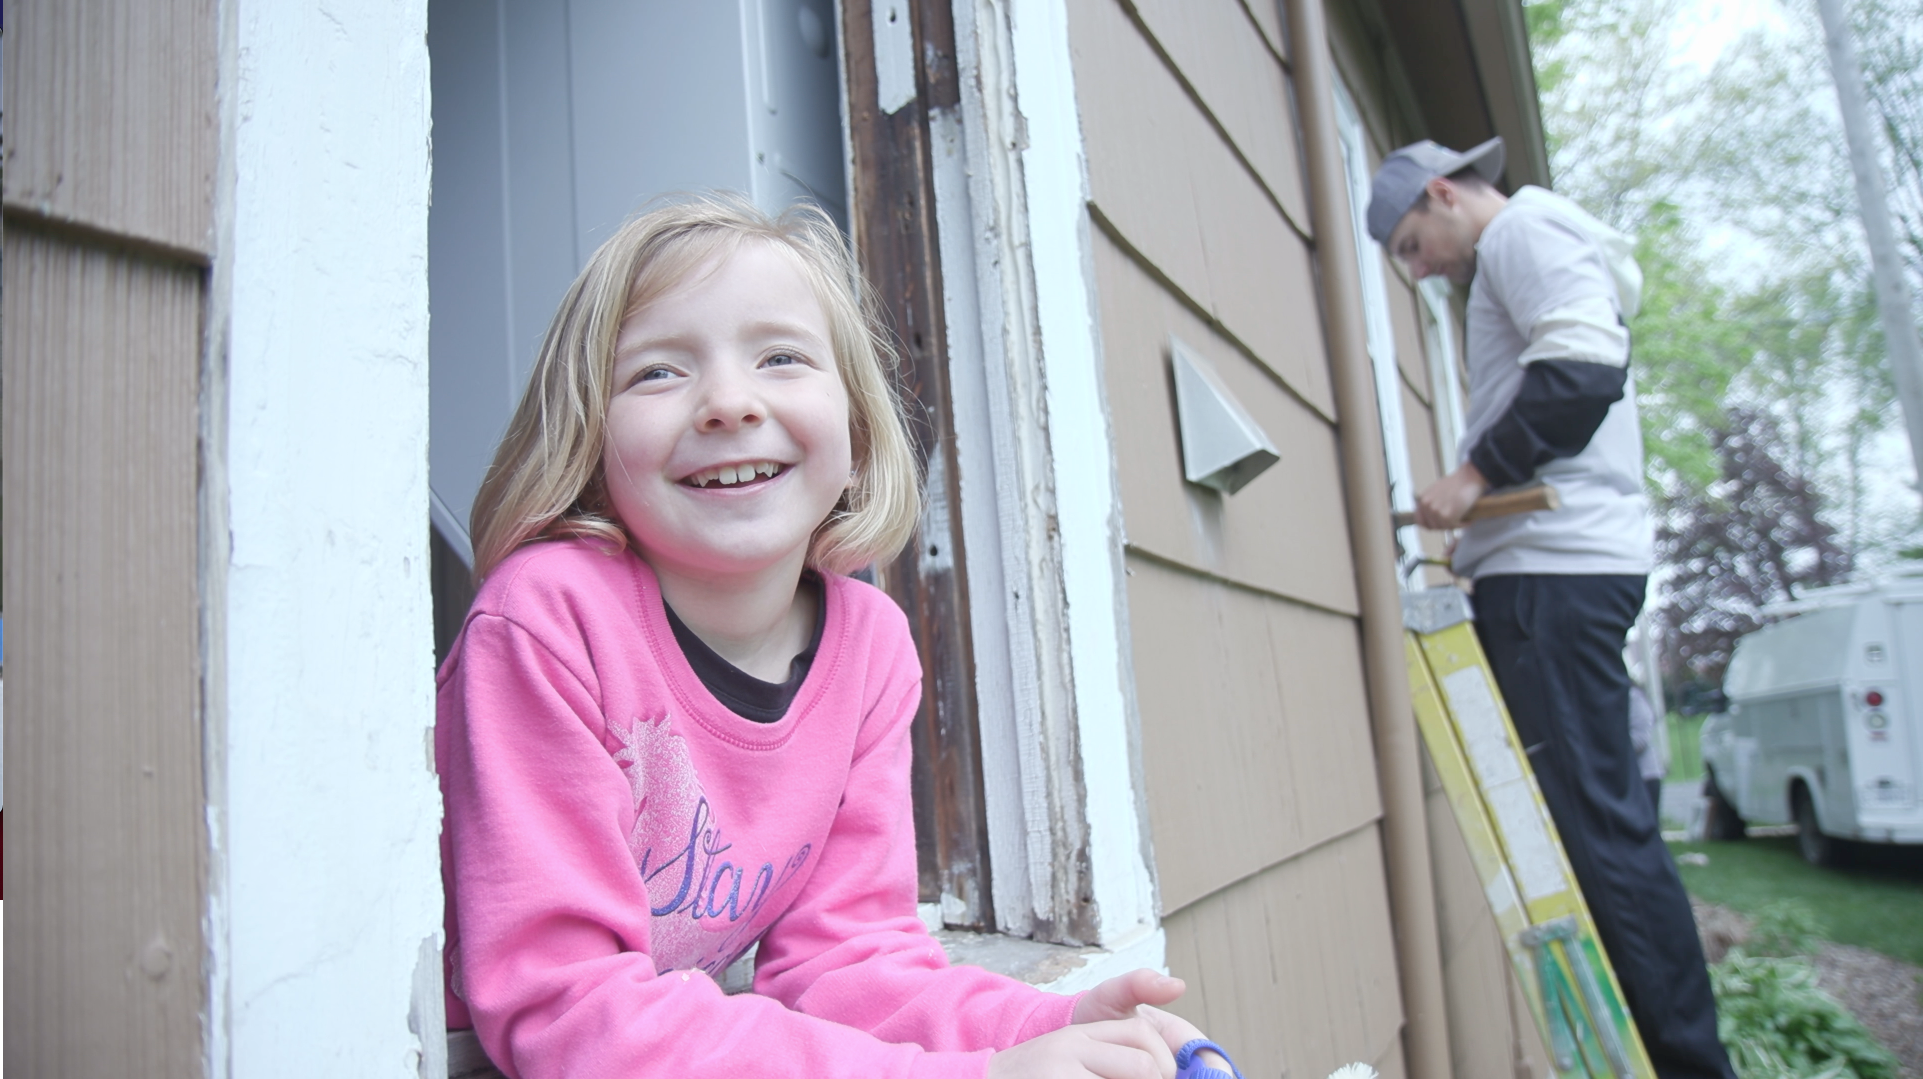 Young girl happy outside home